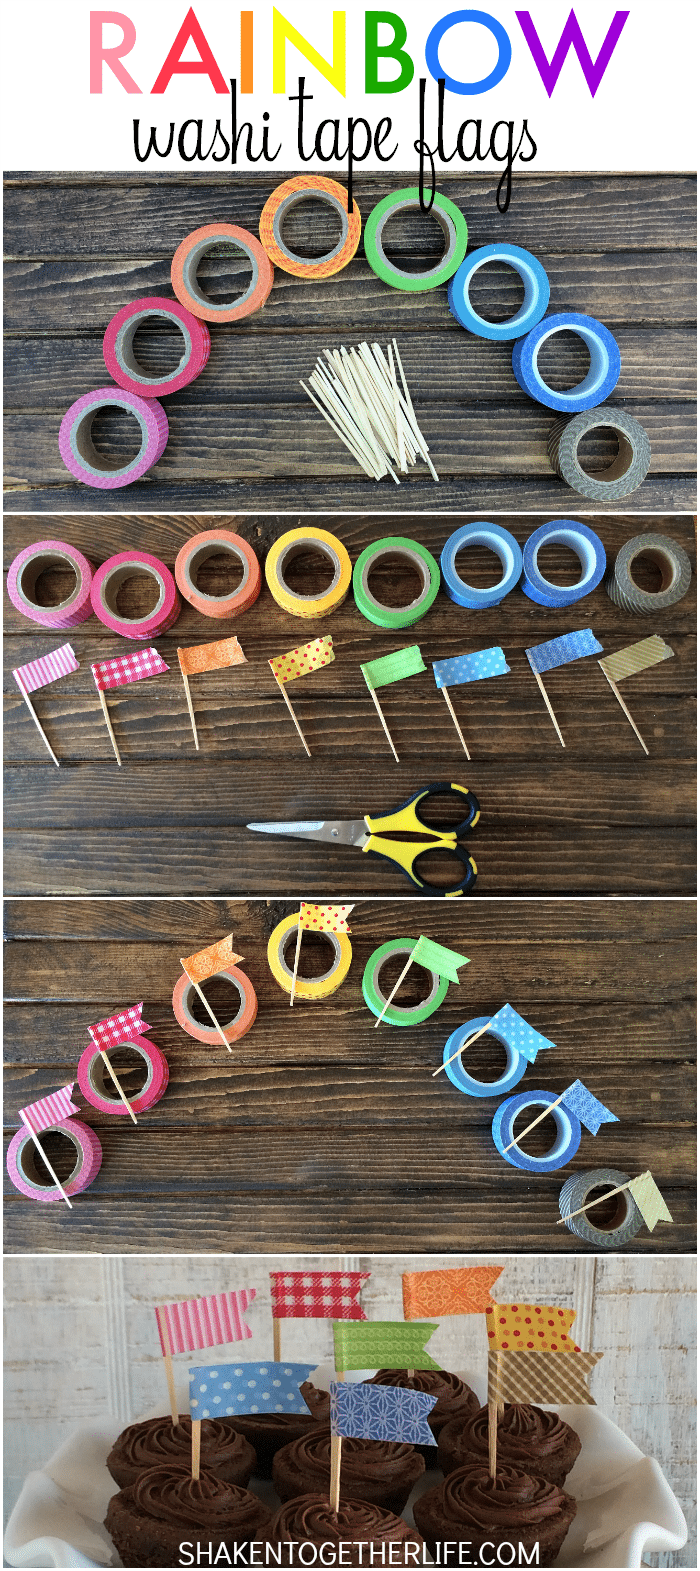 How to make Rainbow Washi Tape Flags - a simple craft from Shaken Together!